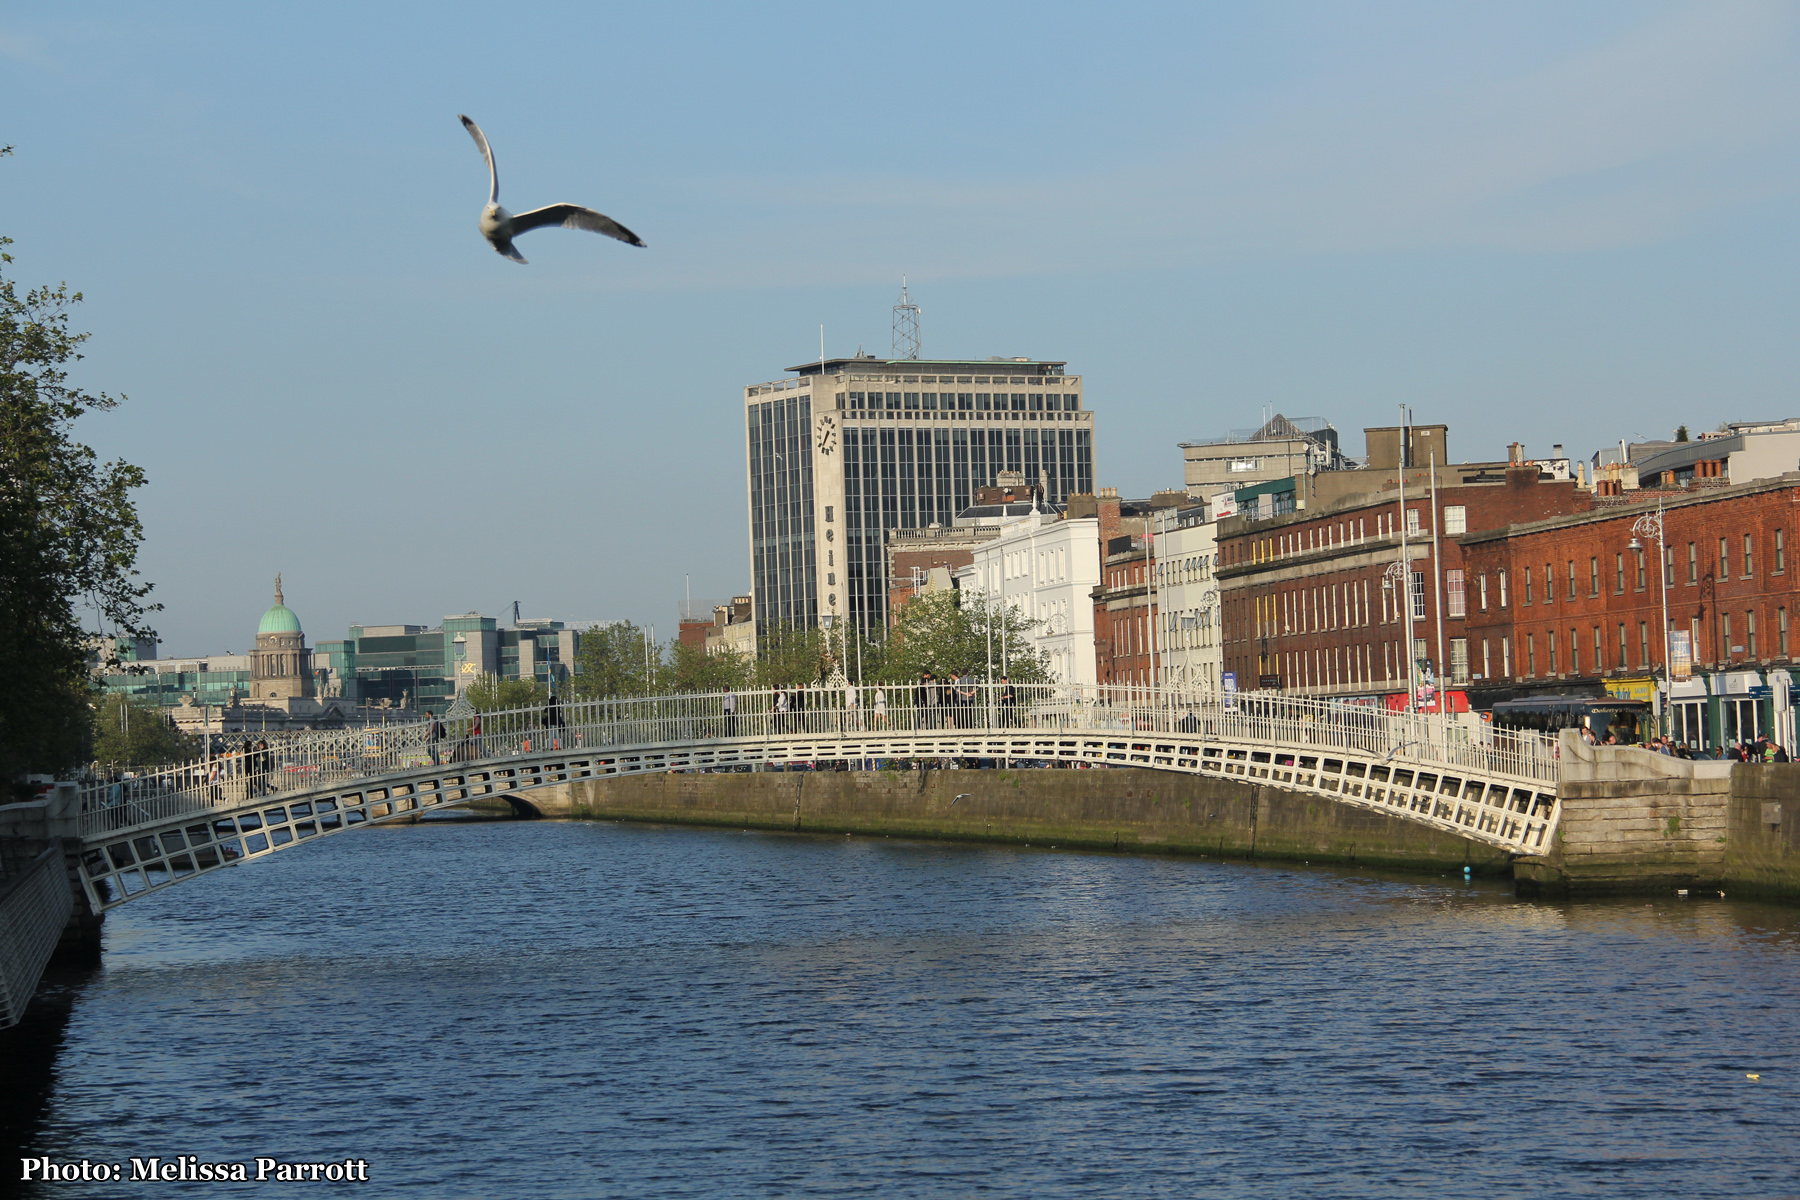 Ha'penny bridge + the Customs House in the background